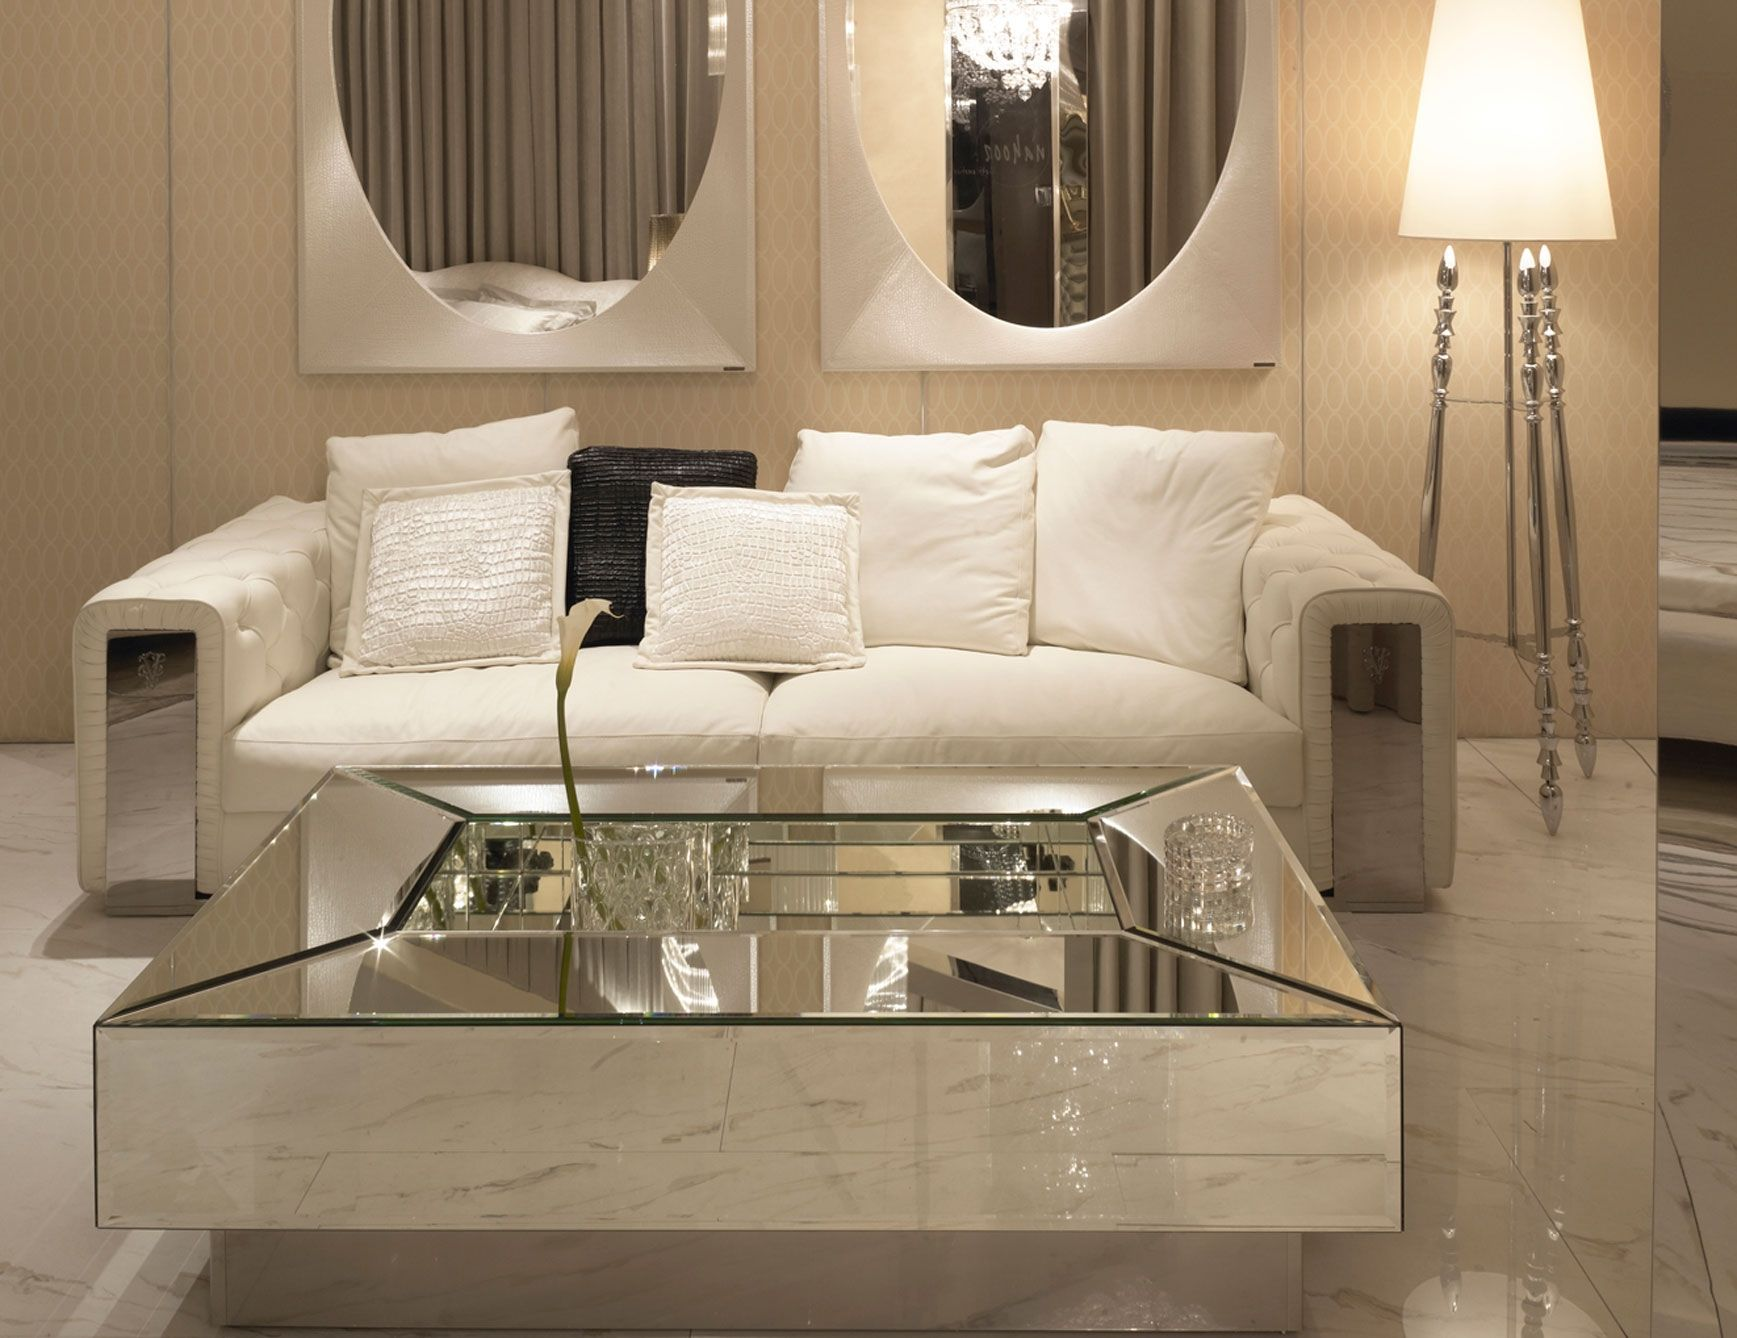 Good Mesmerizing Mirrored Coffee Table With Glass And Wood Combined: Furniture  Modern Minimalist Living Room Design